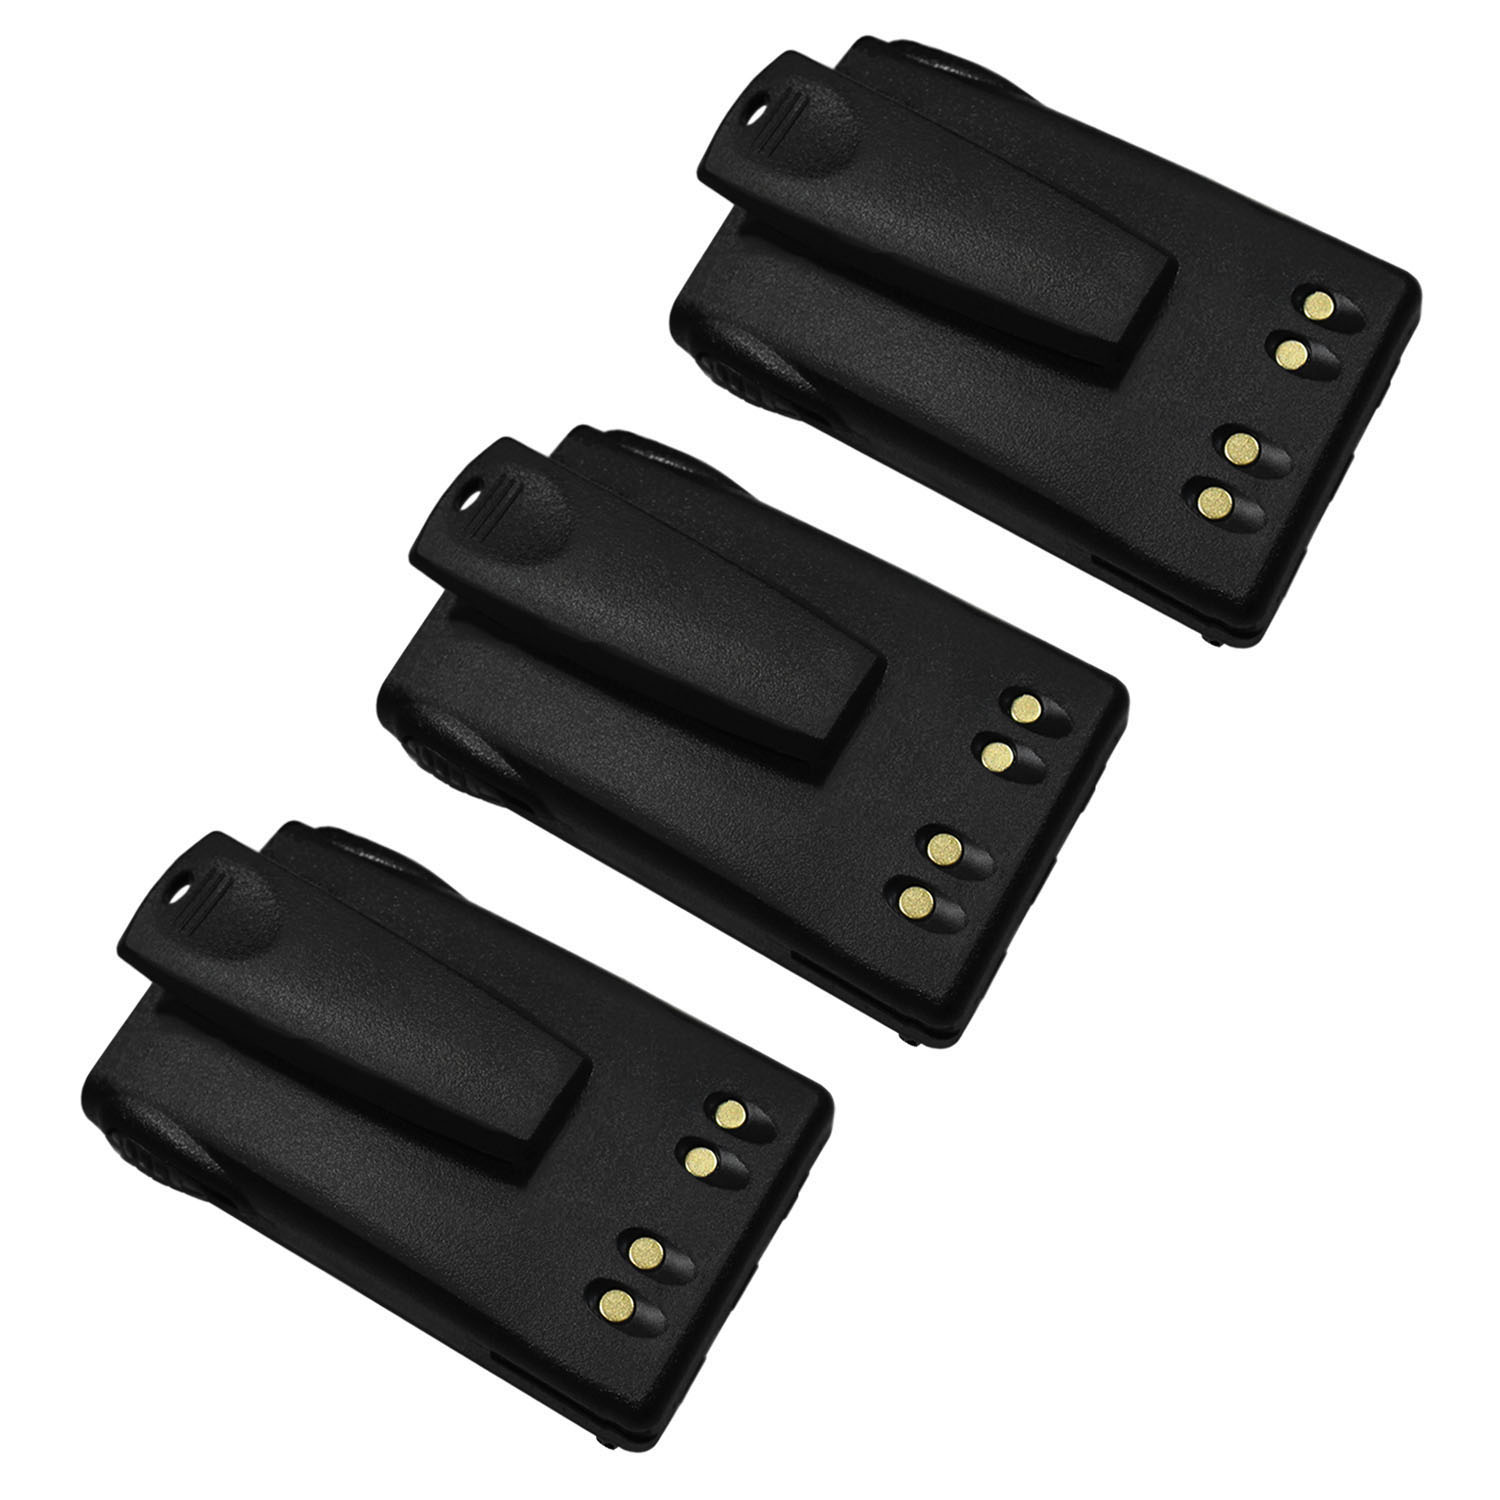 JMNN4023 Battery with CLIP for Motorola EX500 / EX600 - 3 Pack